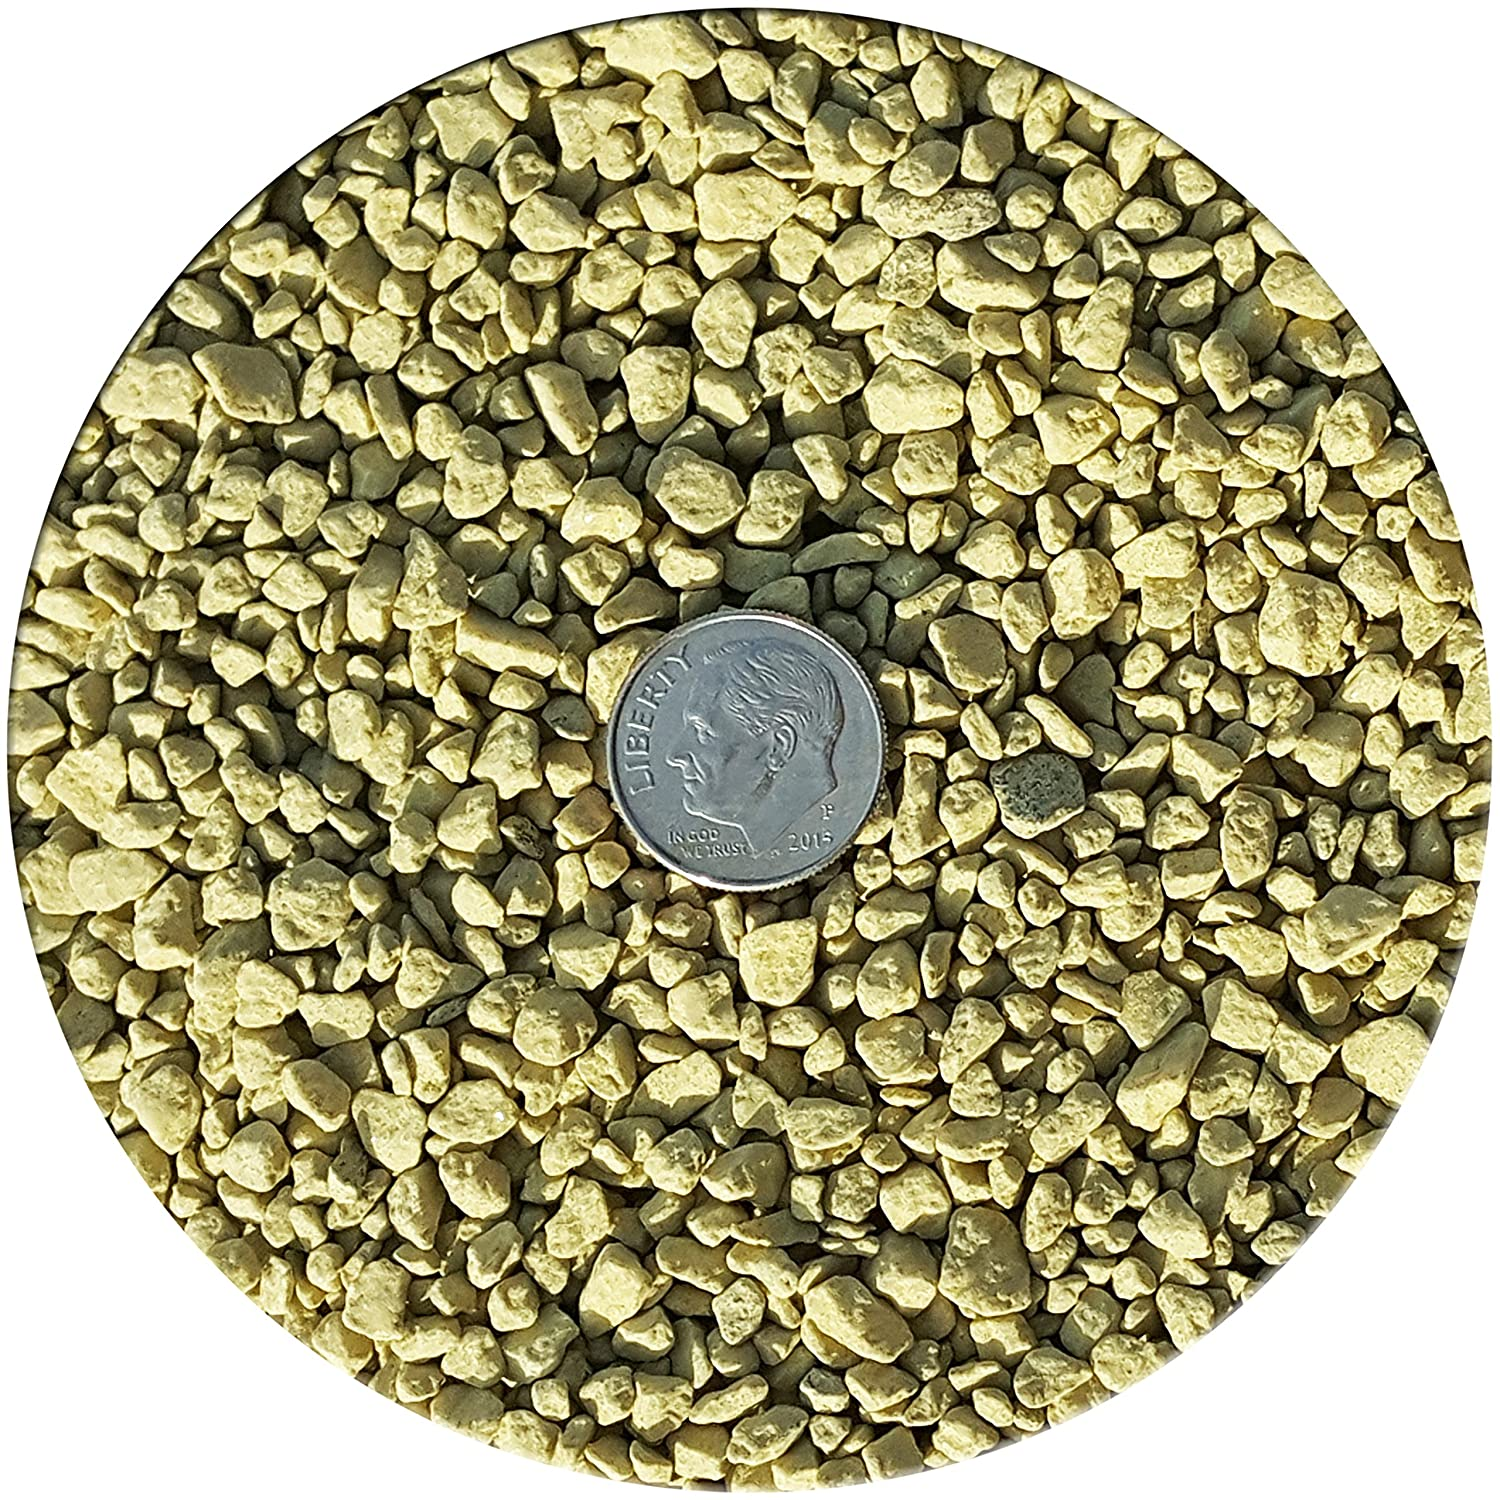 Mustard yellow green Taygum Decorative Gravel, Eco-Friendly, 2.2lb Bag 0.07 0.2  Thickness, for Landscaping, Gardening, Home-Deco, Vase Filler, Play Grounds, Aquariums (Mustard Yellow Green)